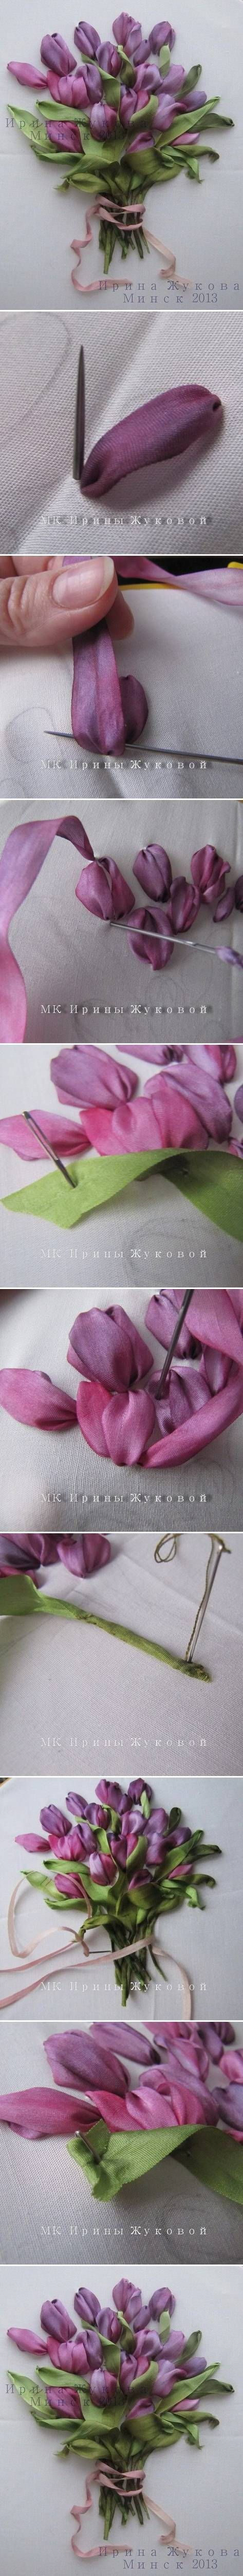 DIY Embroidery Ribbon Flower DIY Embroidery Ribbon Flower